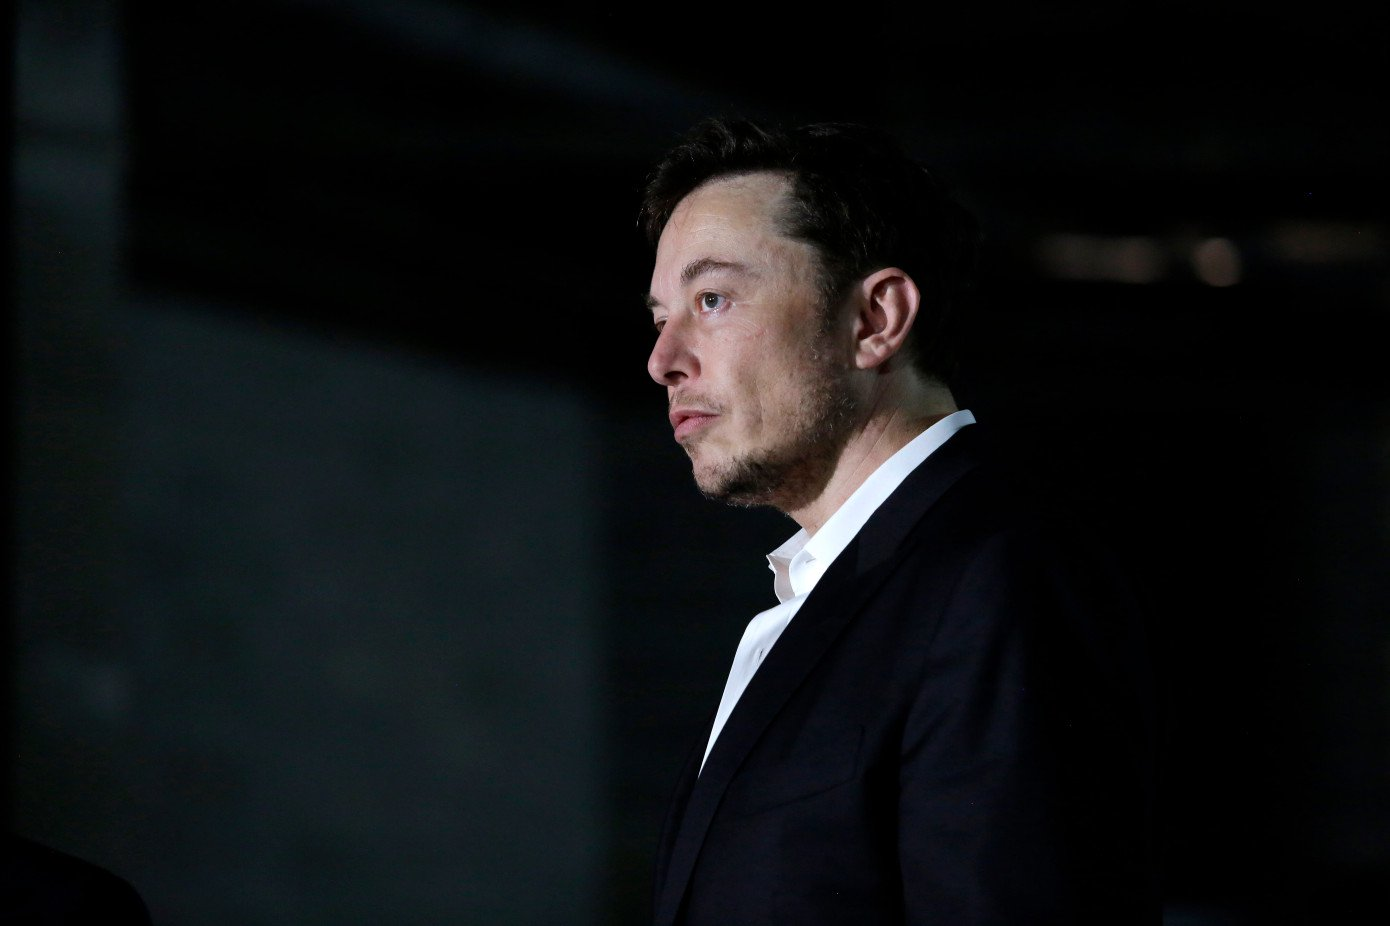 Elon Musk dismissed at the request of the SEC. Tesla fined $ 20 million